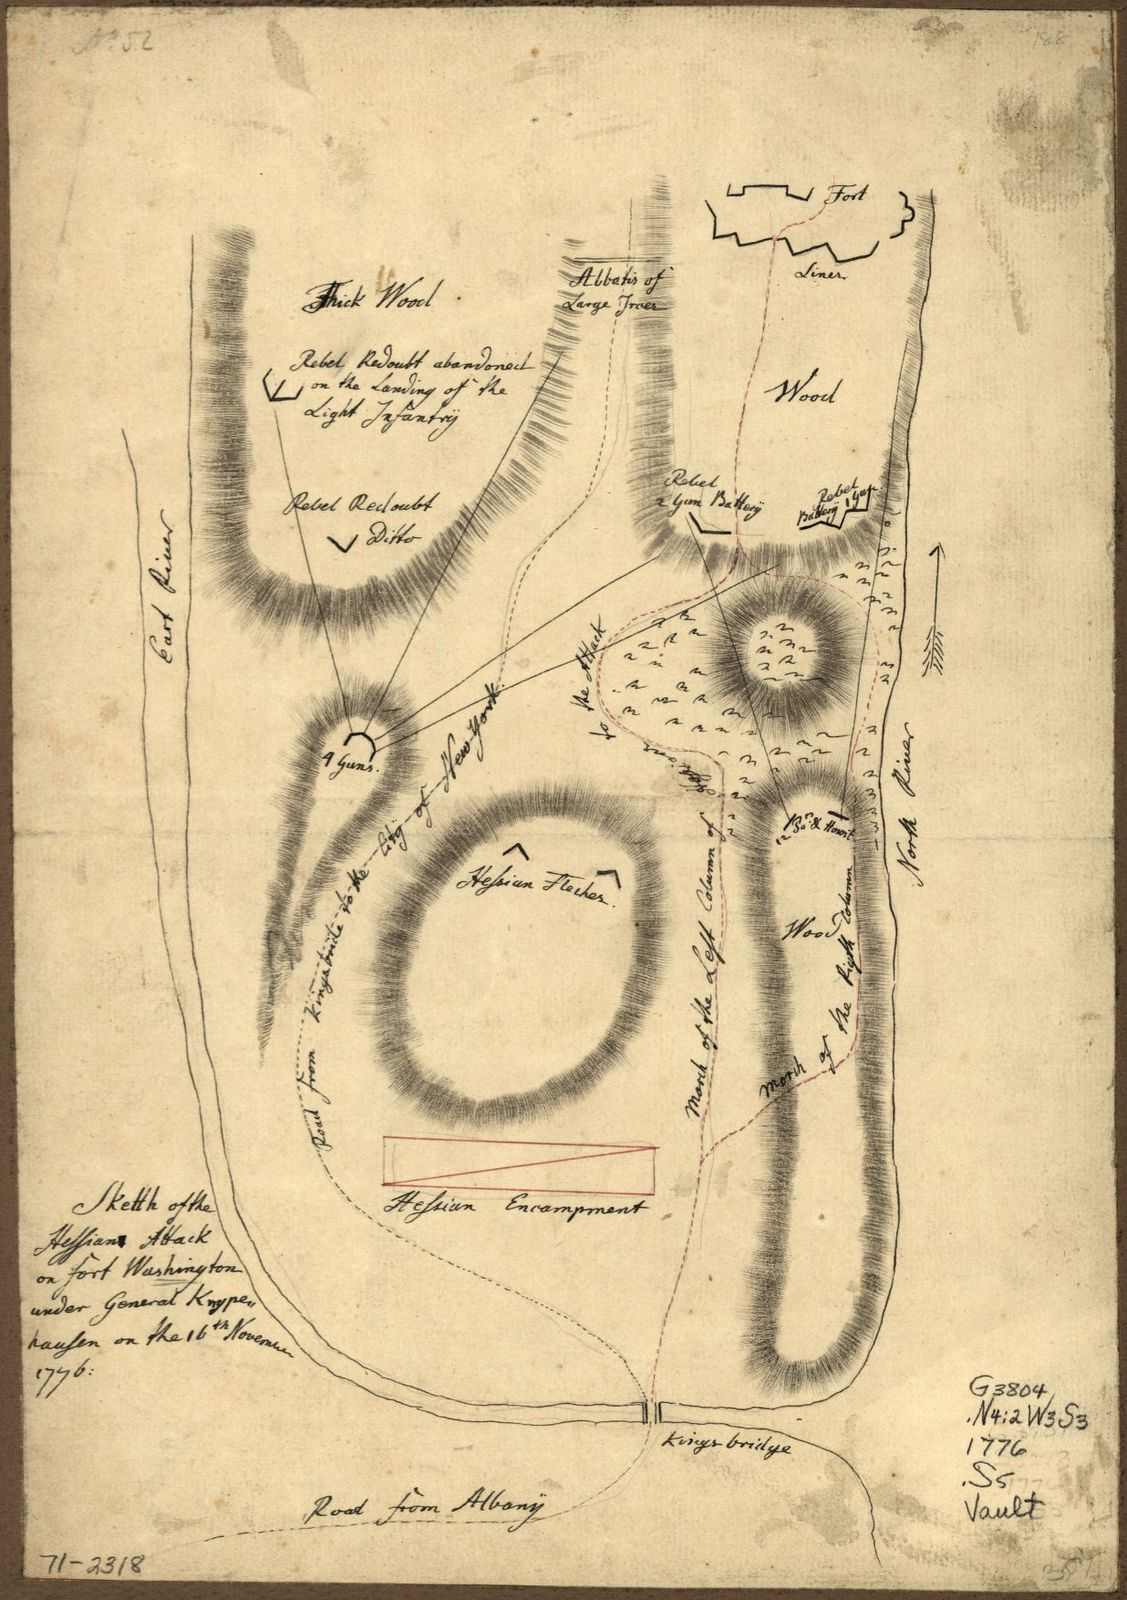 Sketth [sic] of the Hessian attack on Fort Washington under General Knypehausen on the 16th November 1776.